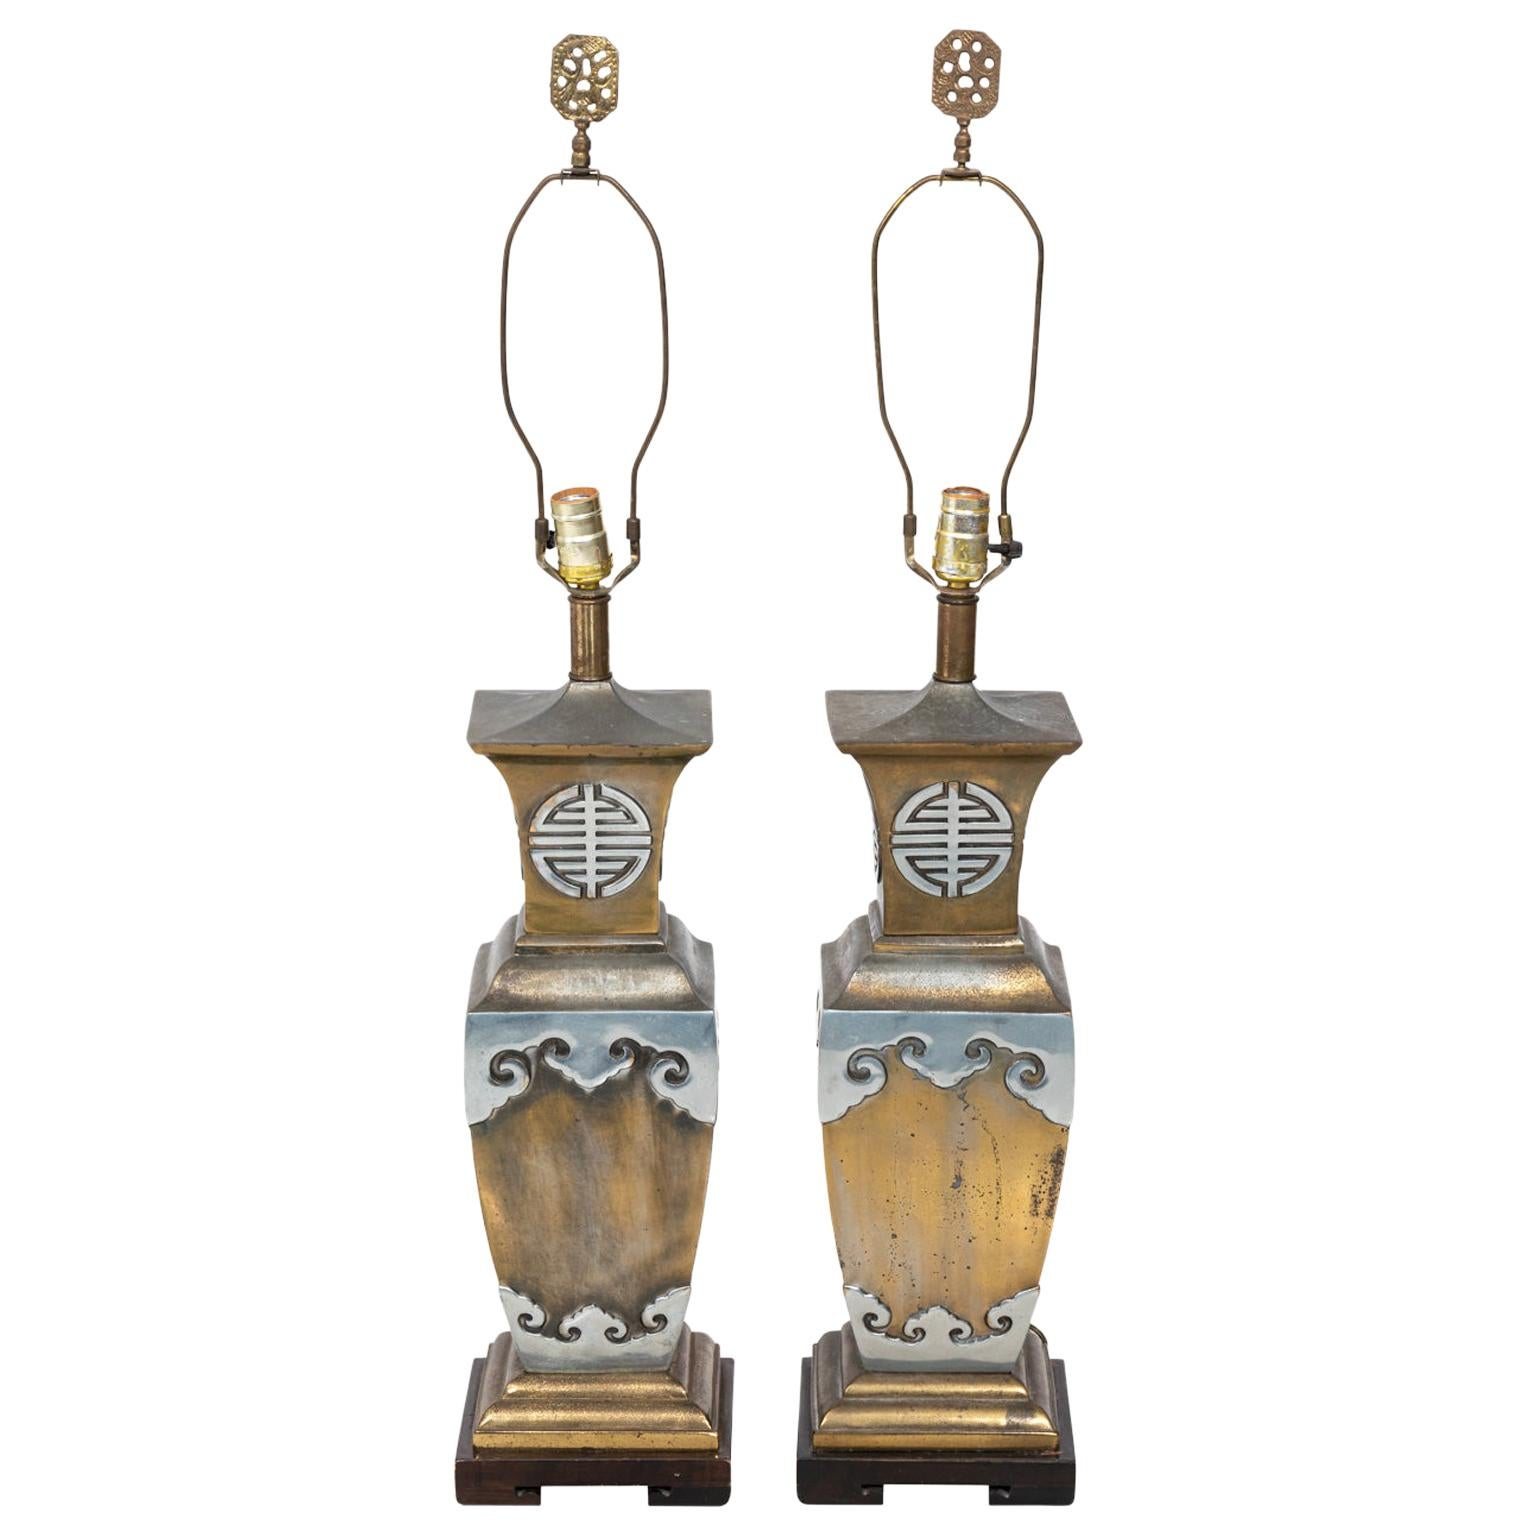 Pair of Chinoiserie Style Table Lamps in the Manner of James Mont